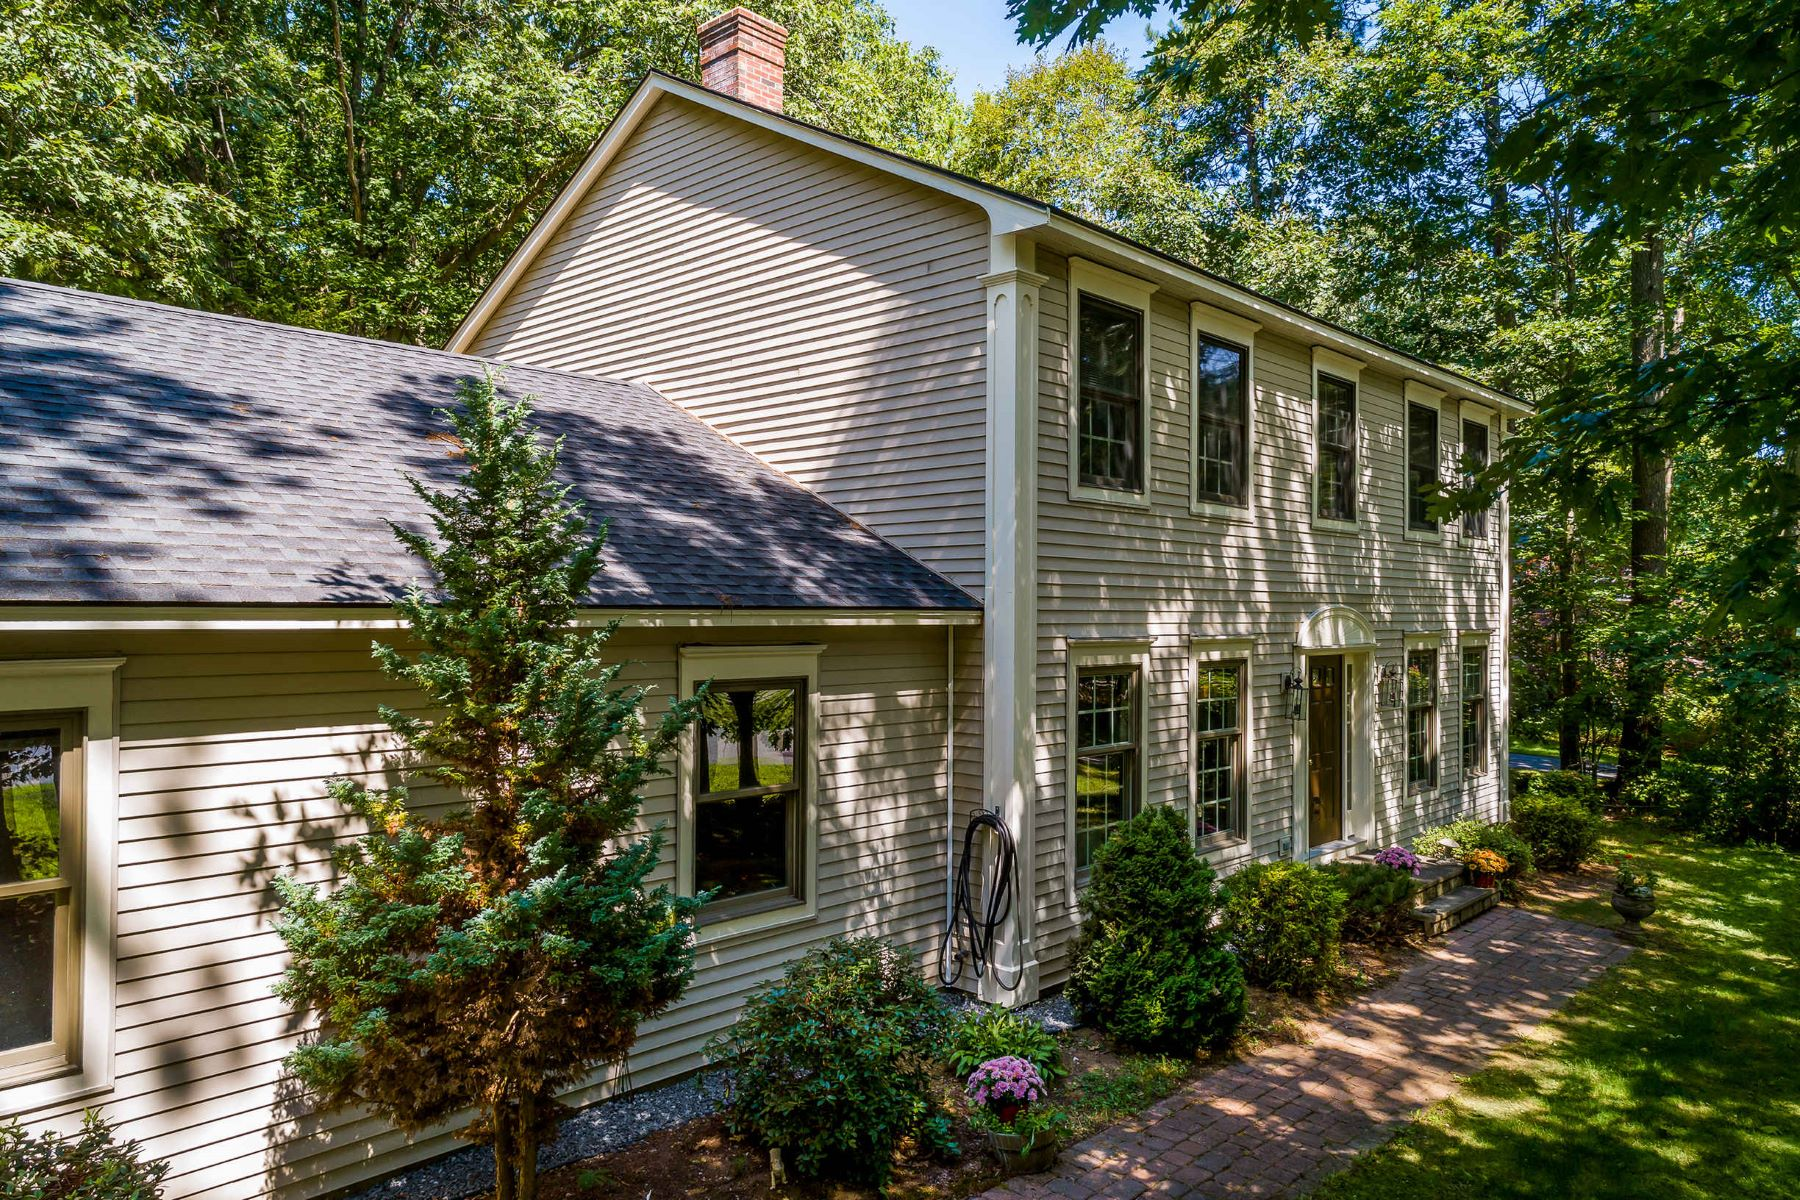 Single Family Homes for Sale at Classic Colonial on Corner Lot in The Forest in Wells 117 Pointed Fir Boulevard W, Wells, Maine 04090 United States